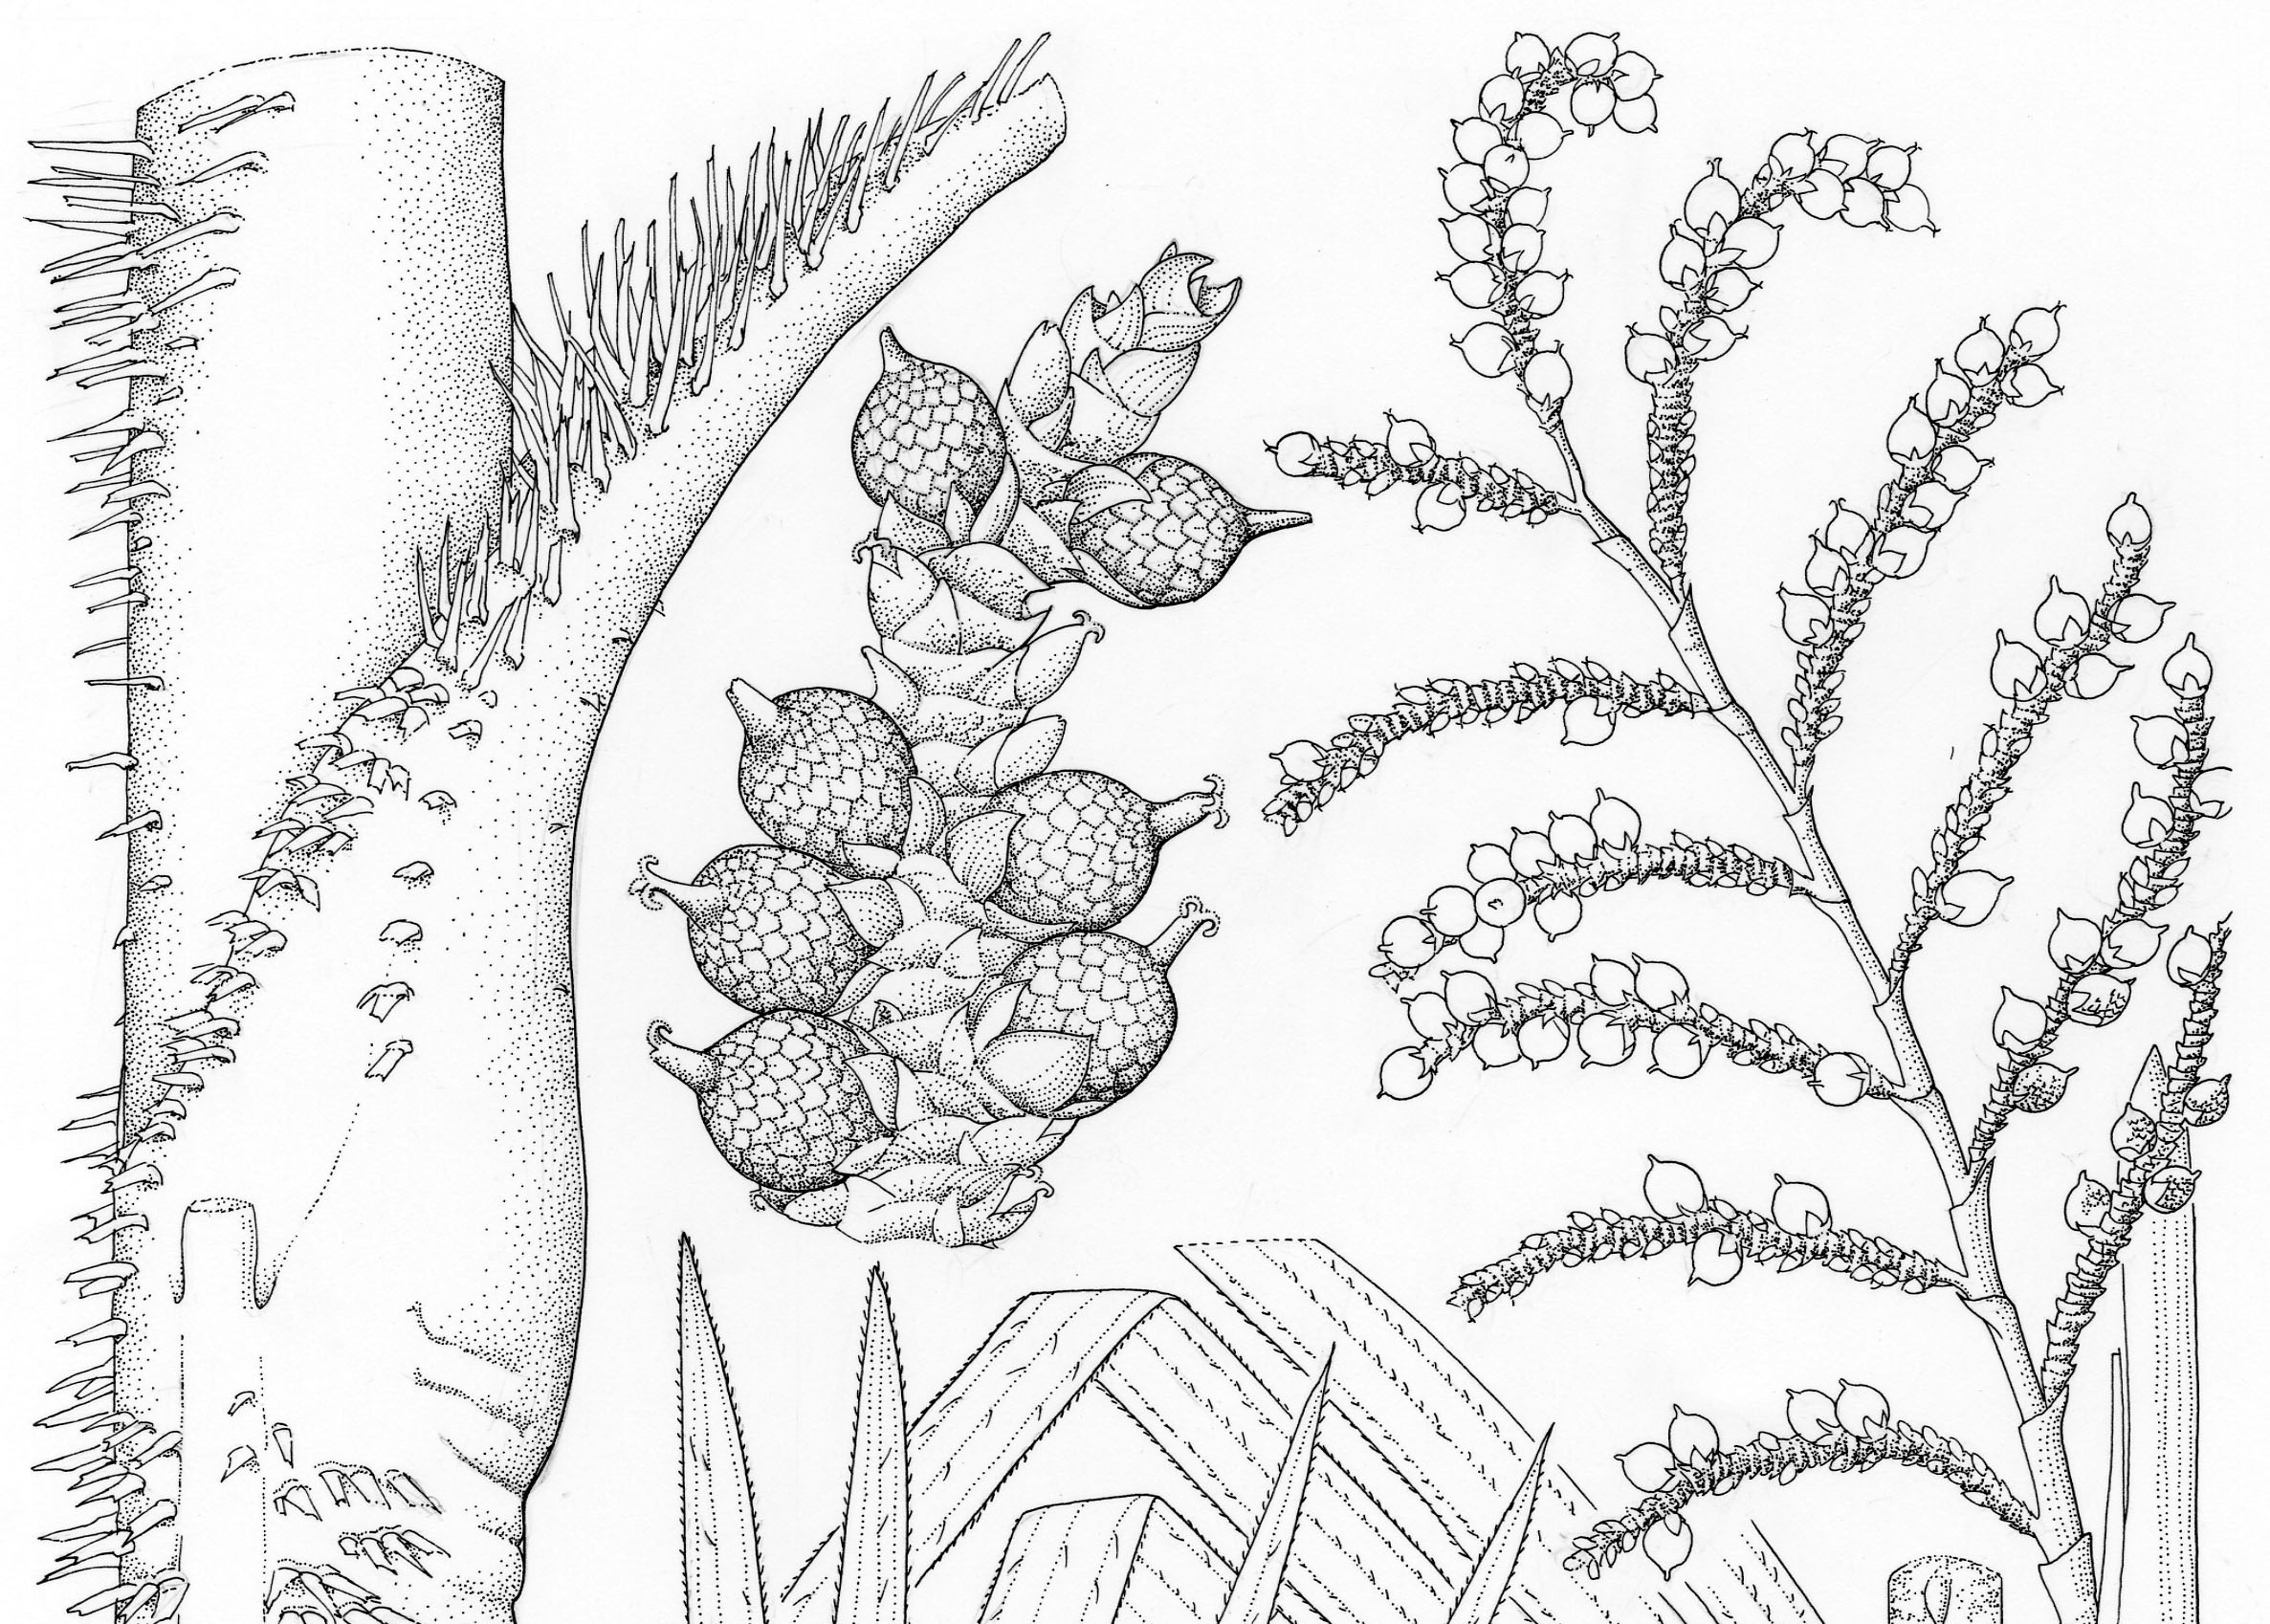 A section of Lucy Smith's Calamus eximus illustration